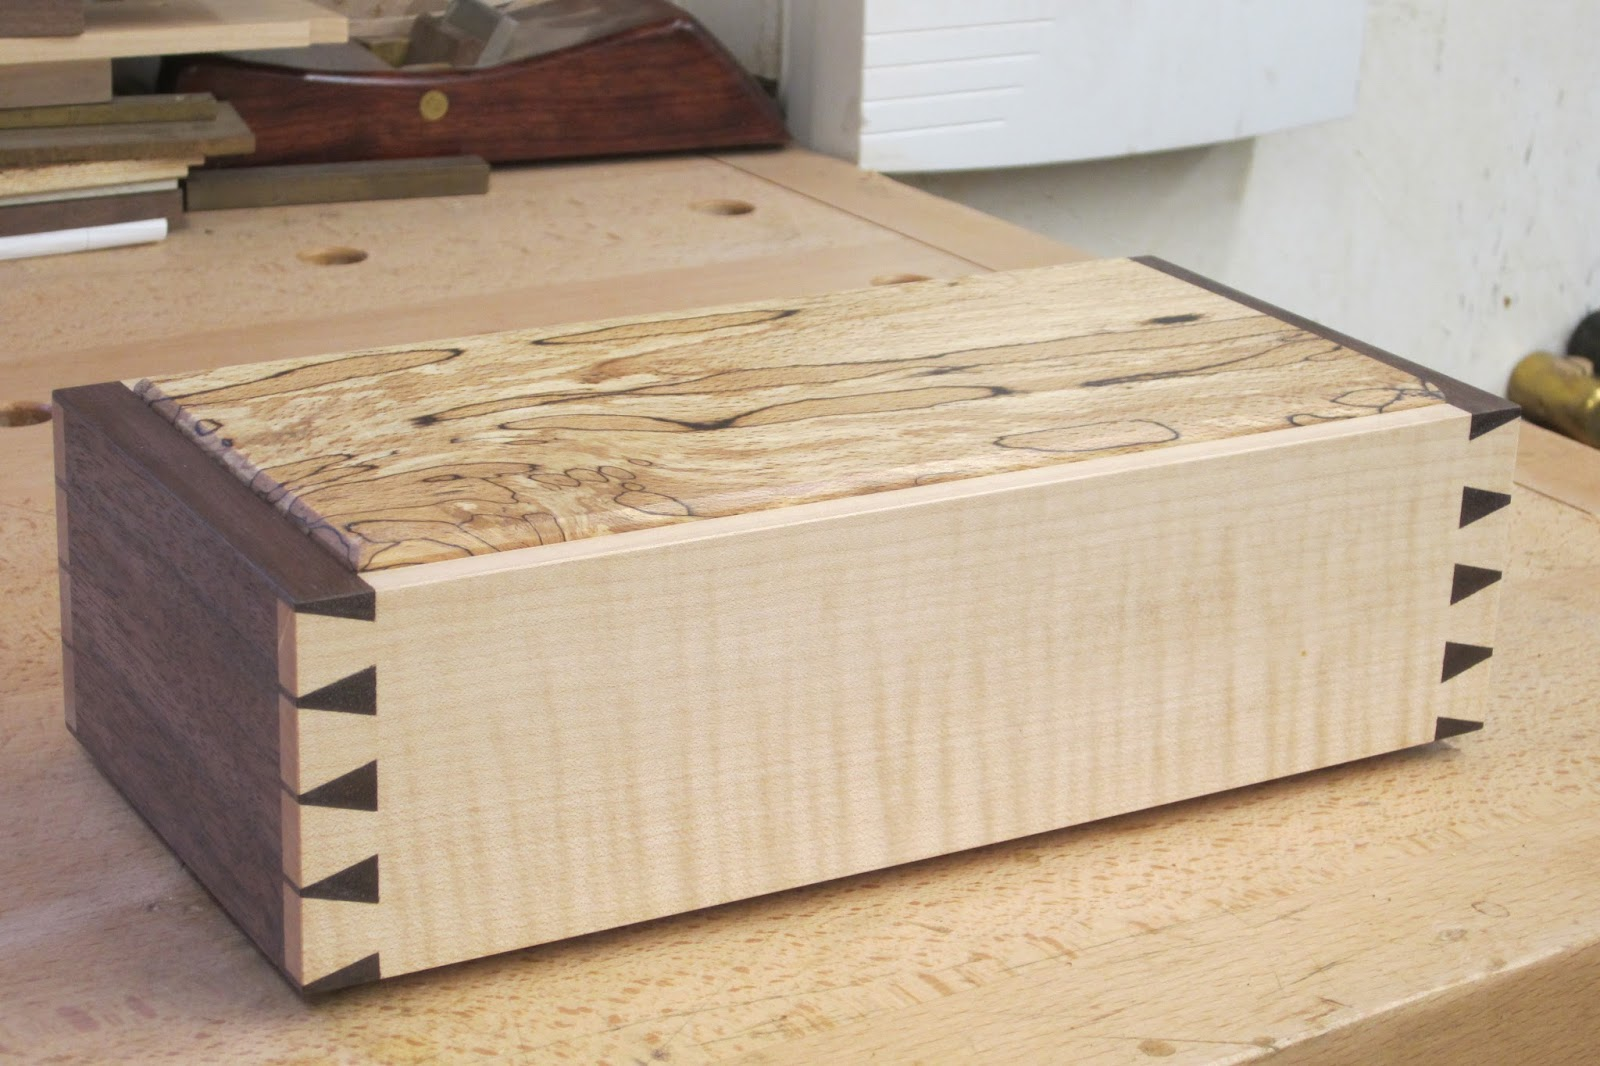 David Barron Furniture: Box For Dovetailing Course